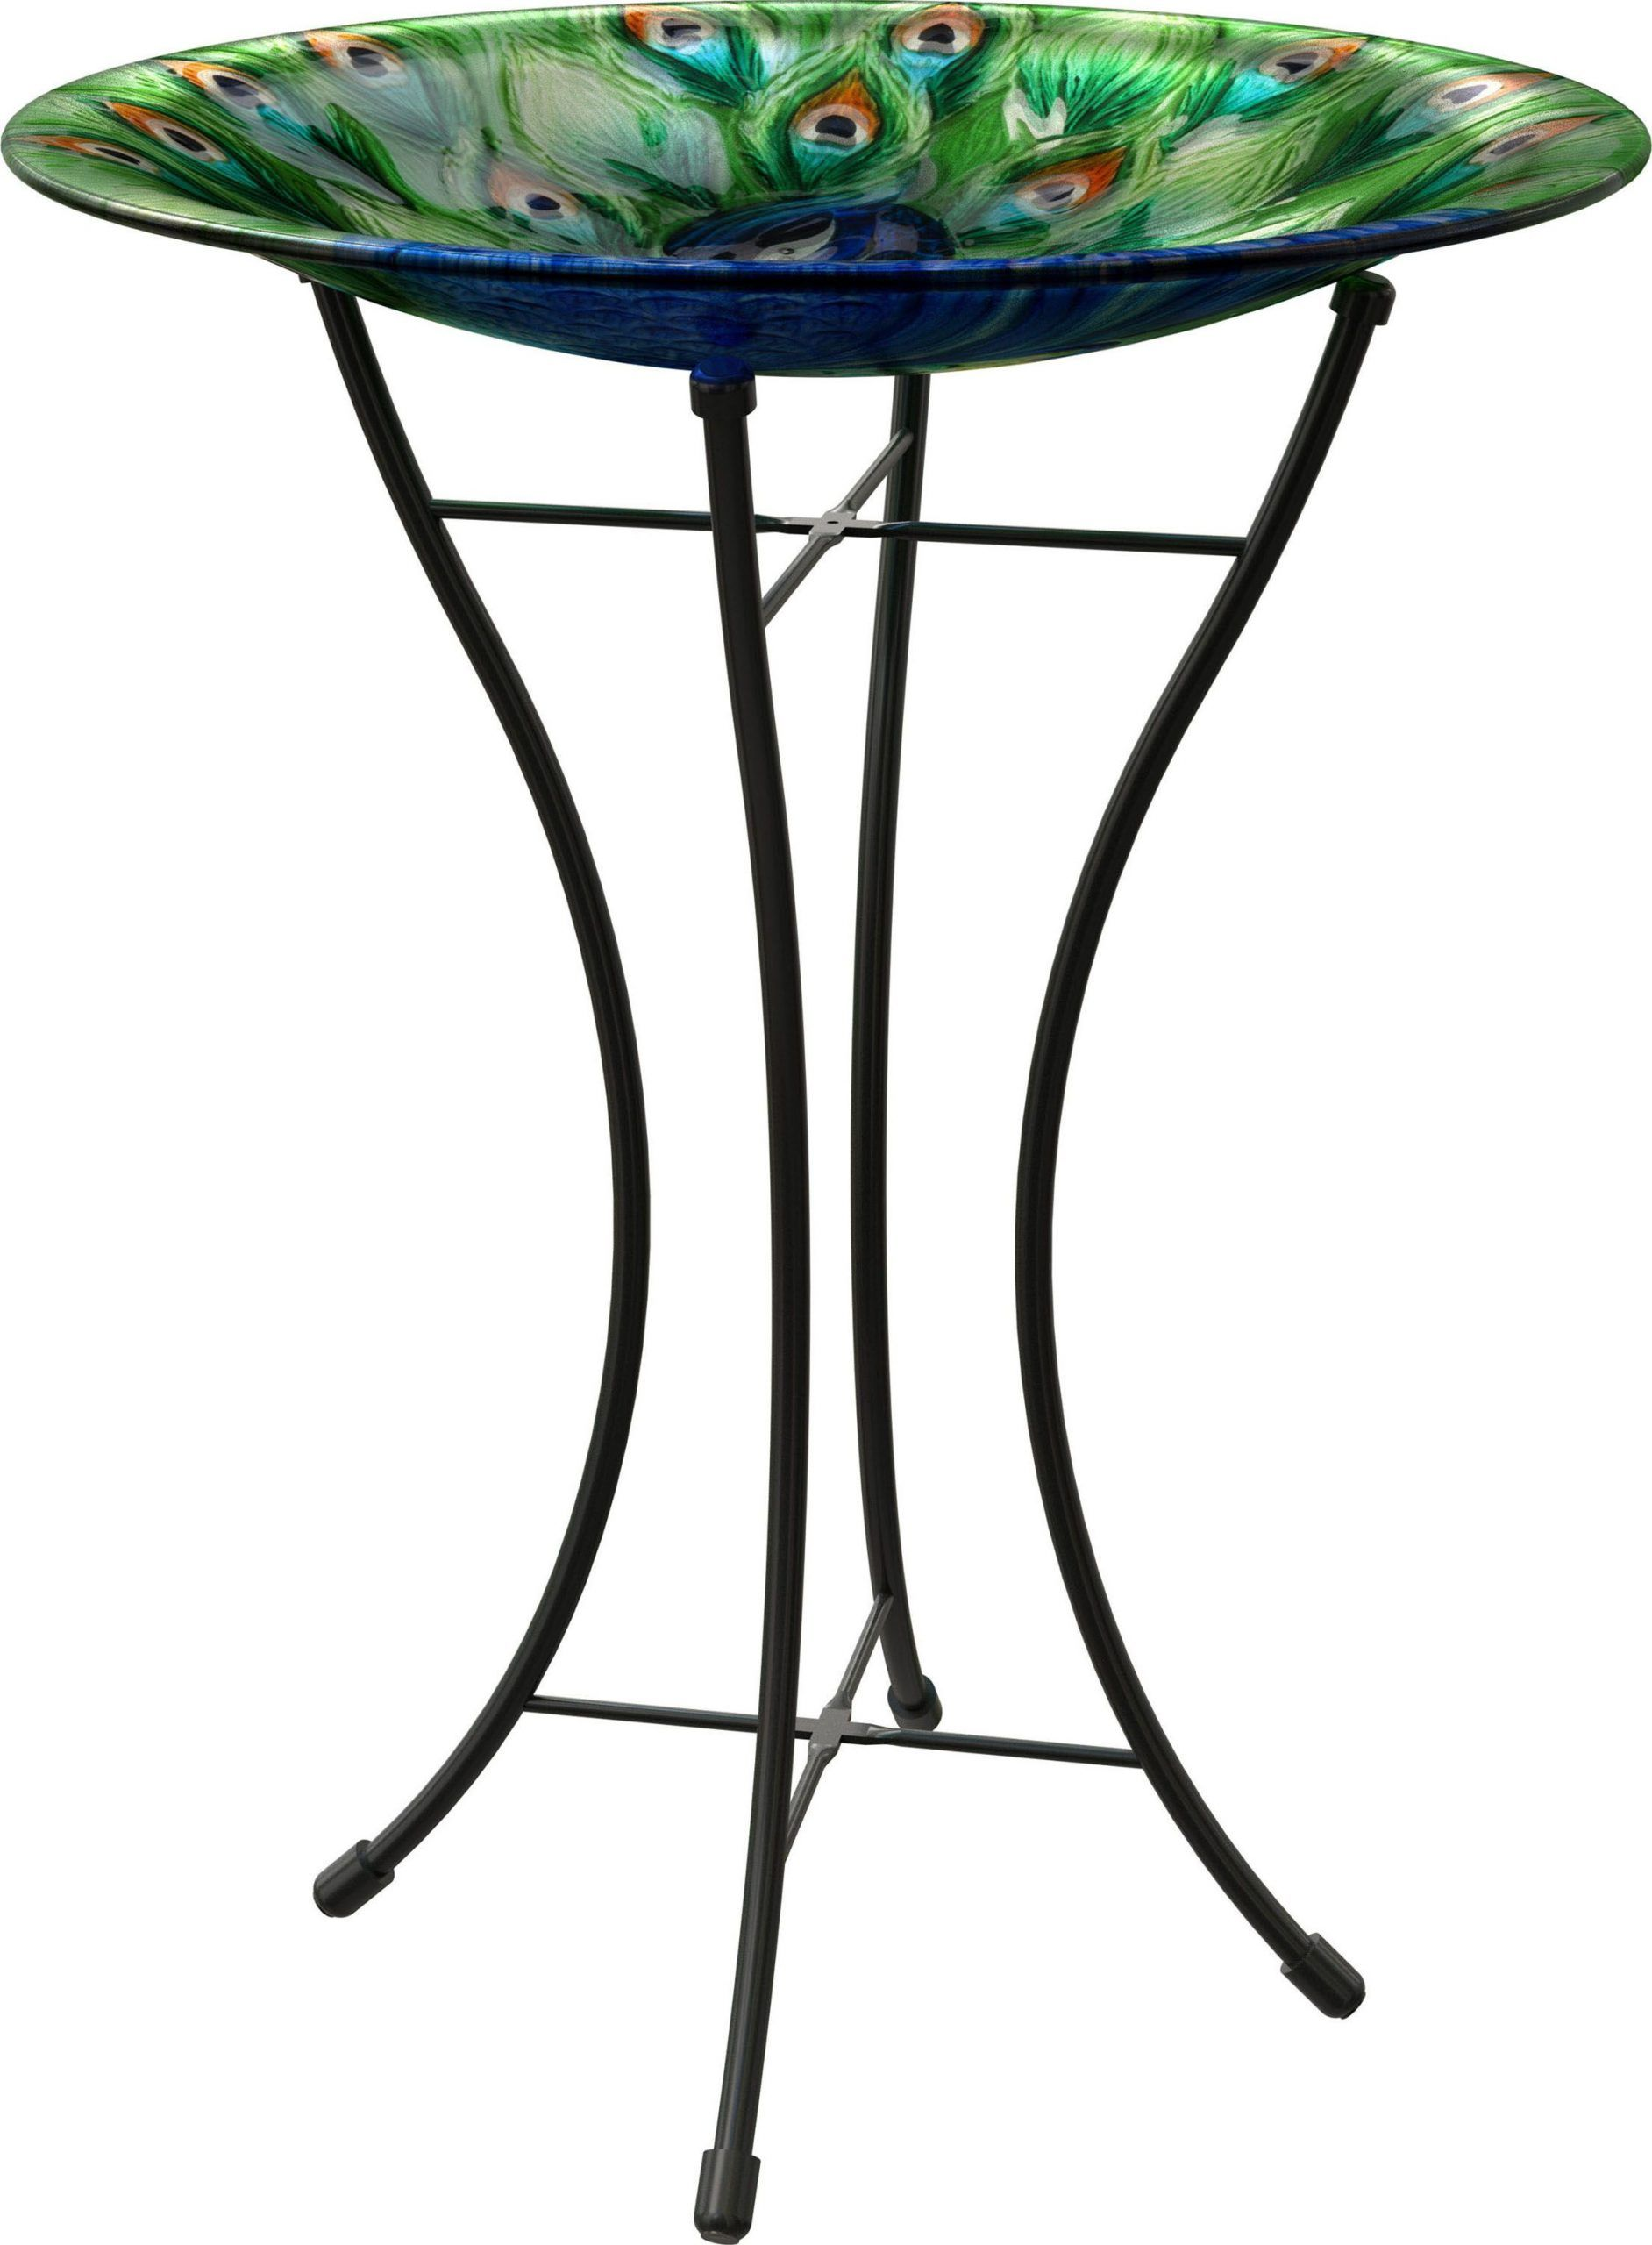 Birds Peacock Glass Bird Bath With Stand By Panacea 16 Inch Bath Bird Birds Glass Inch Panacea Peacock Stand In 2020 Glass Bird Bath Bird Bath Glass Birds